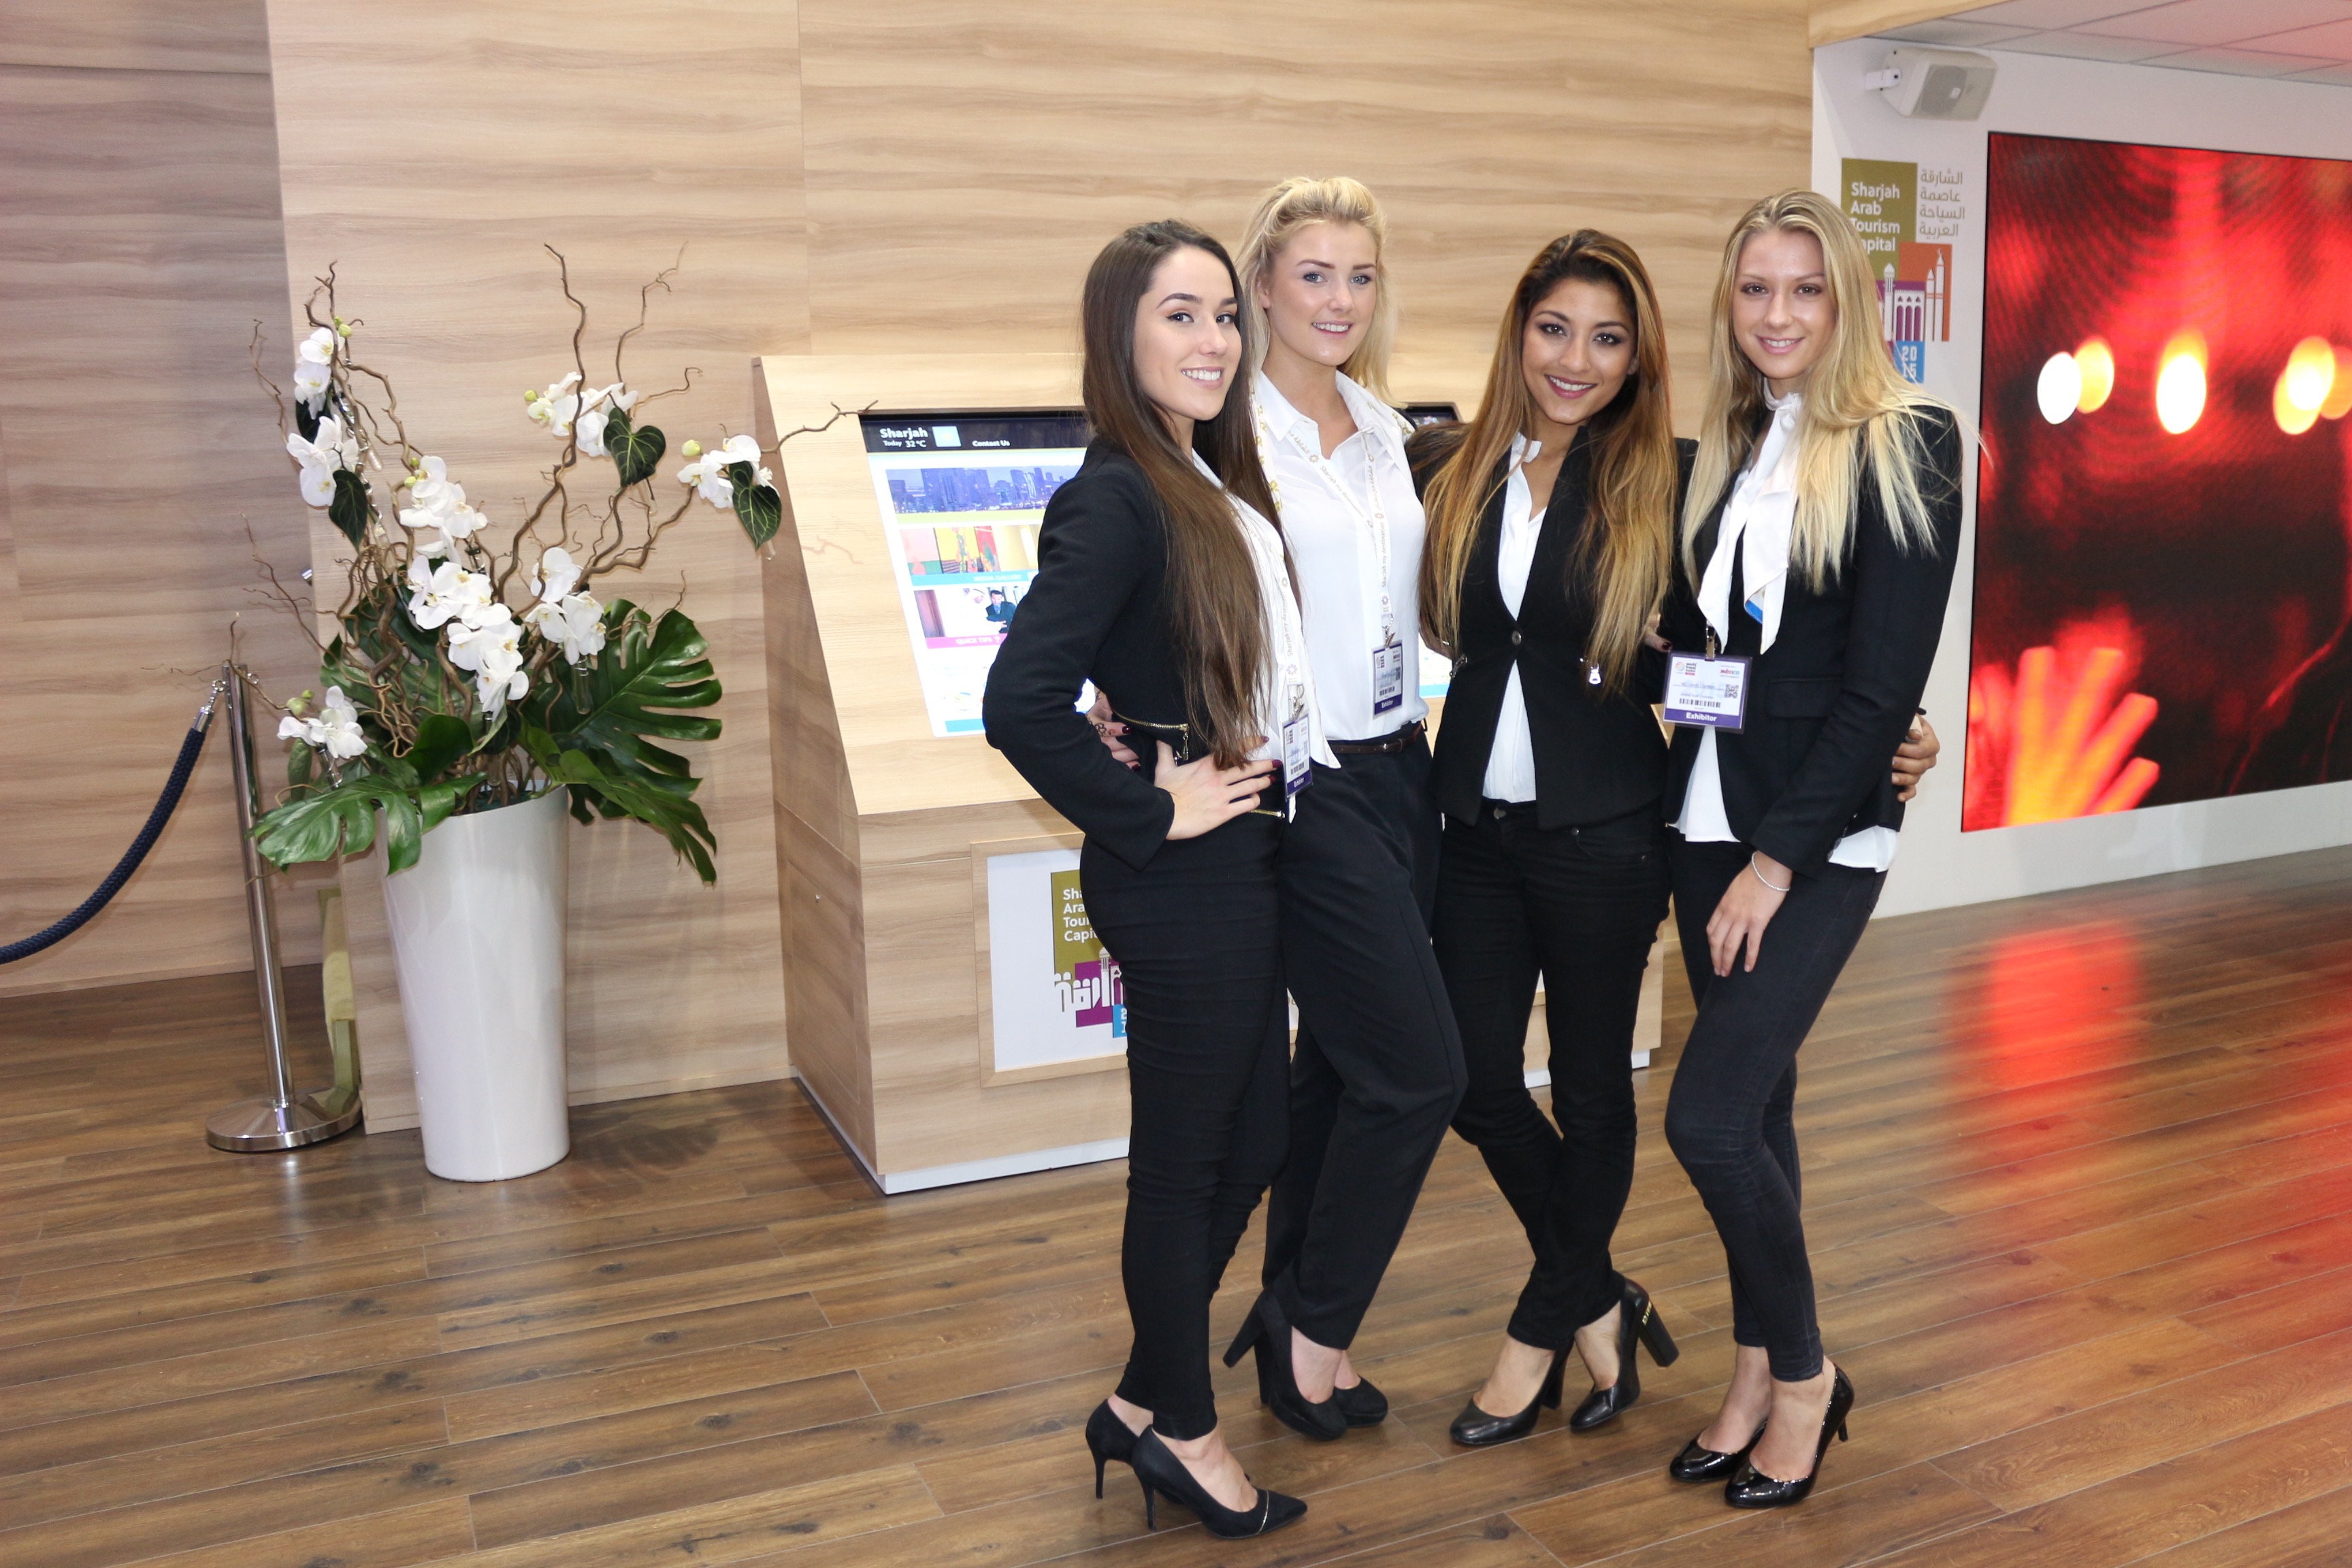 Exhibition Stand Hire Newcastle : Exhibition stand hostesses girls